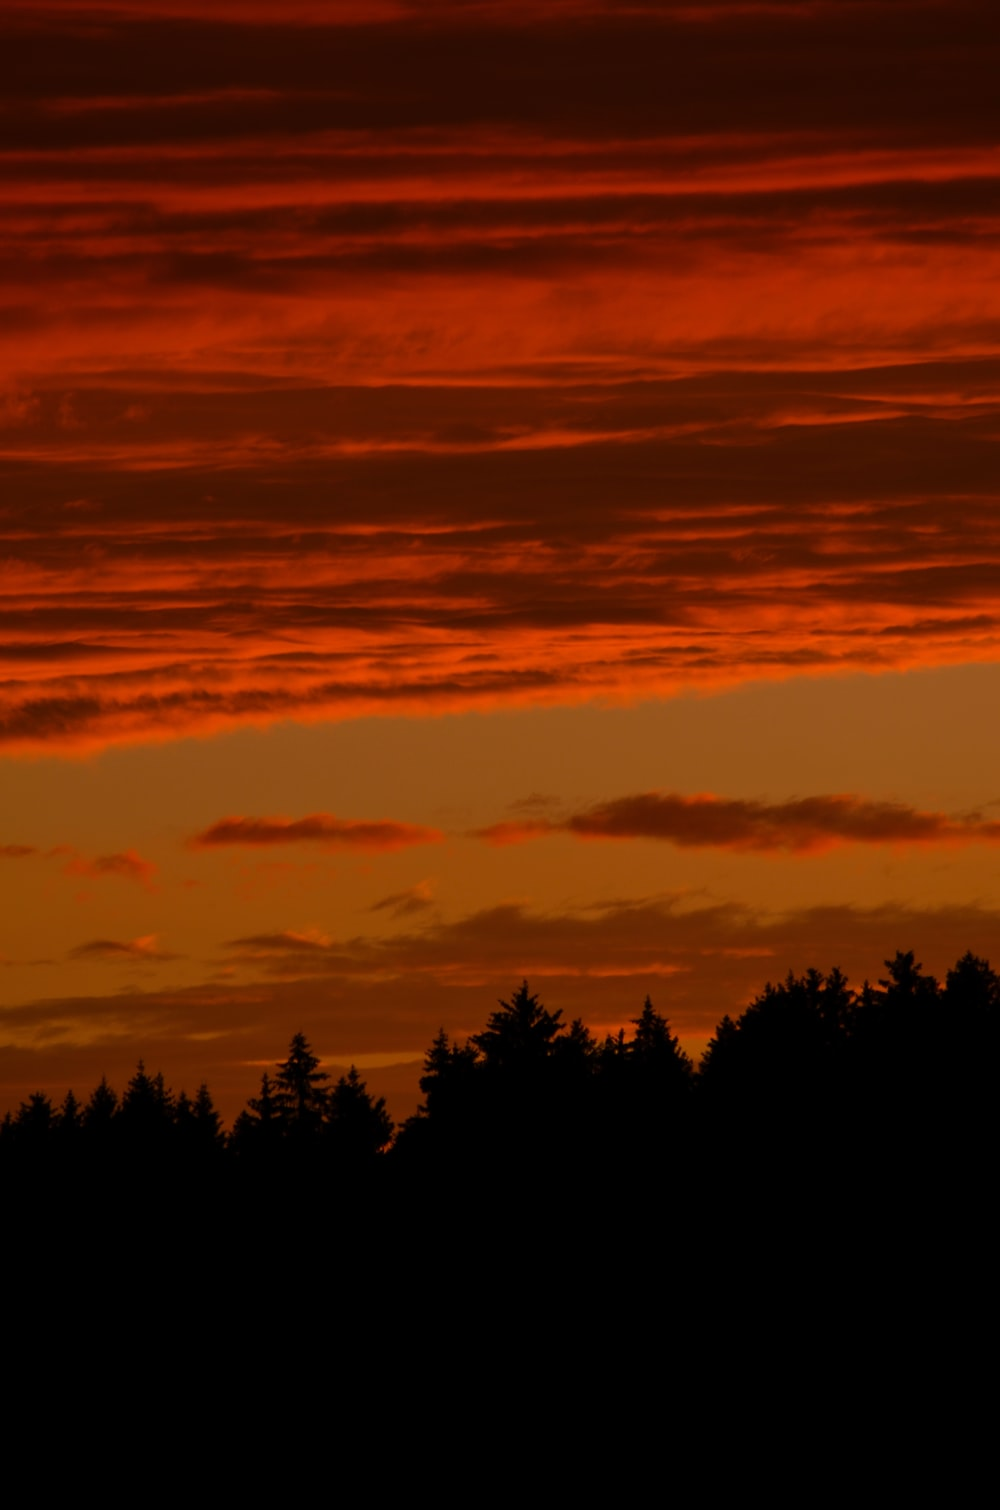 silhouette of trees under cloudy sky during sunset